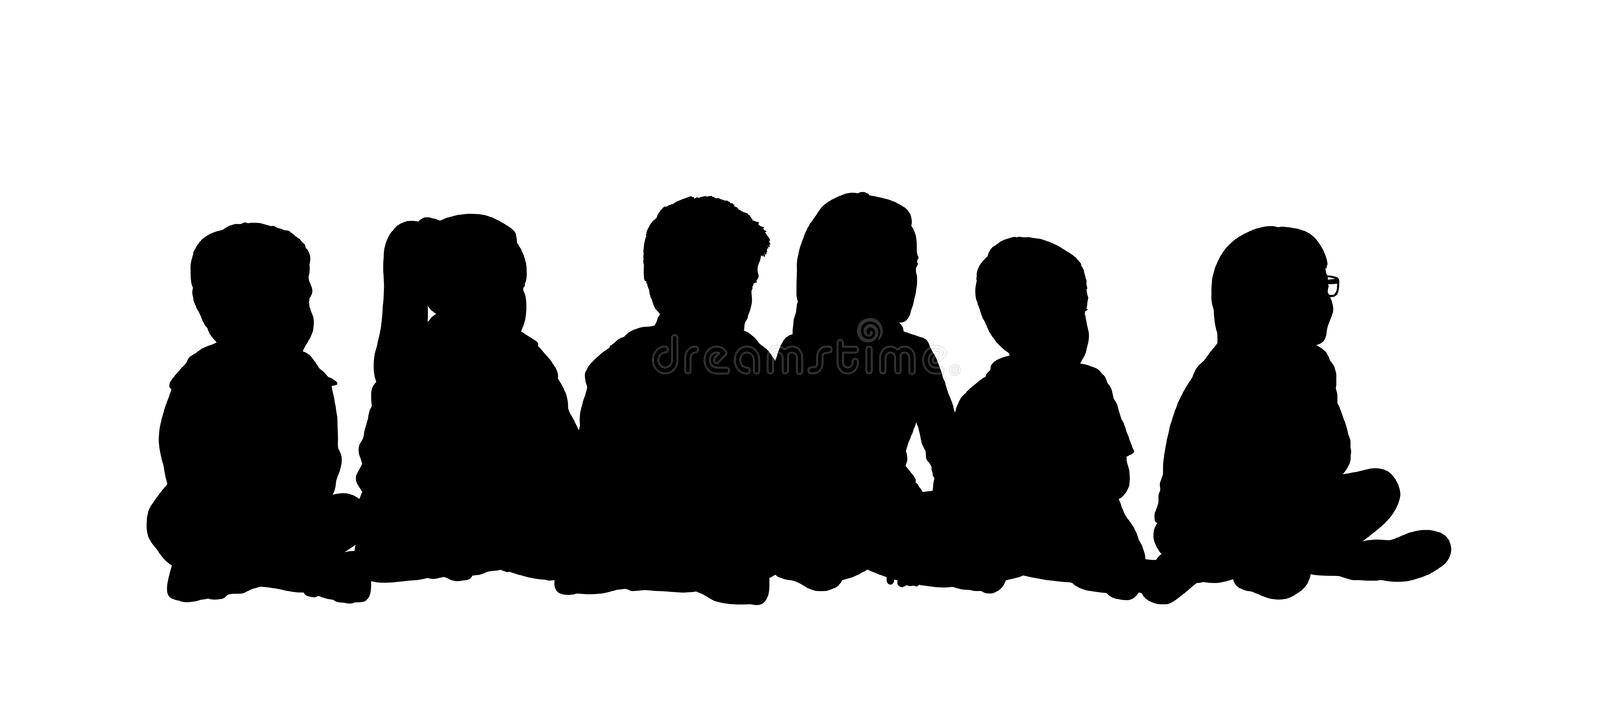 Medium Group Of Children Seated Silhouette 5 Stock